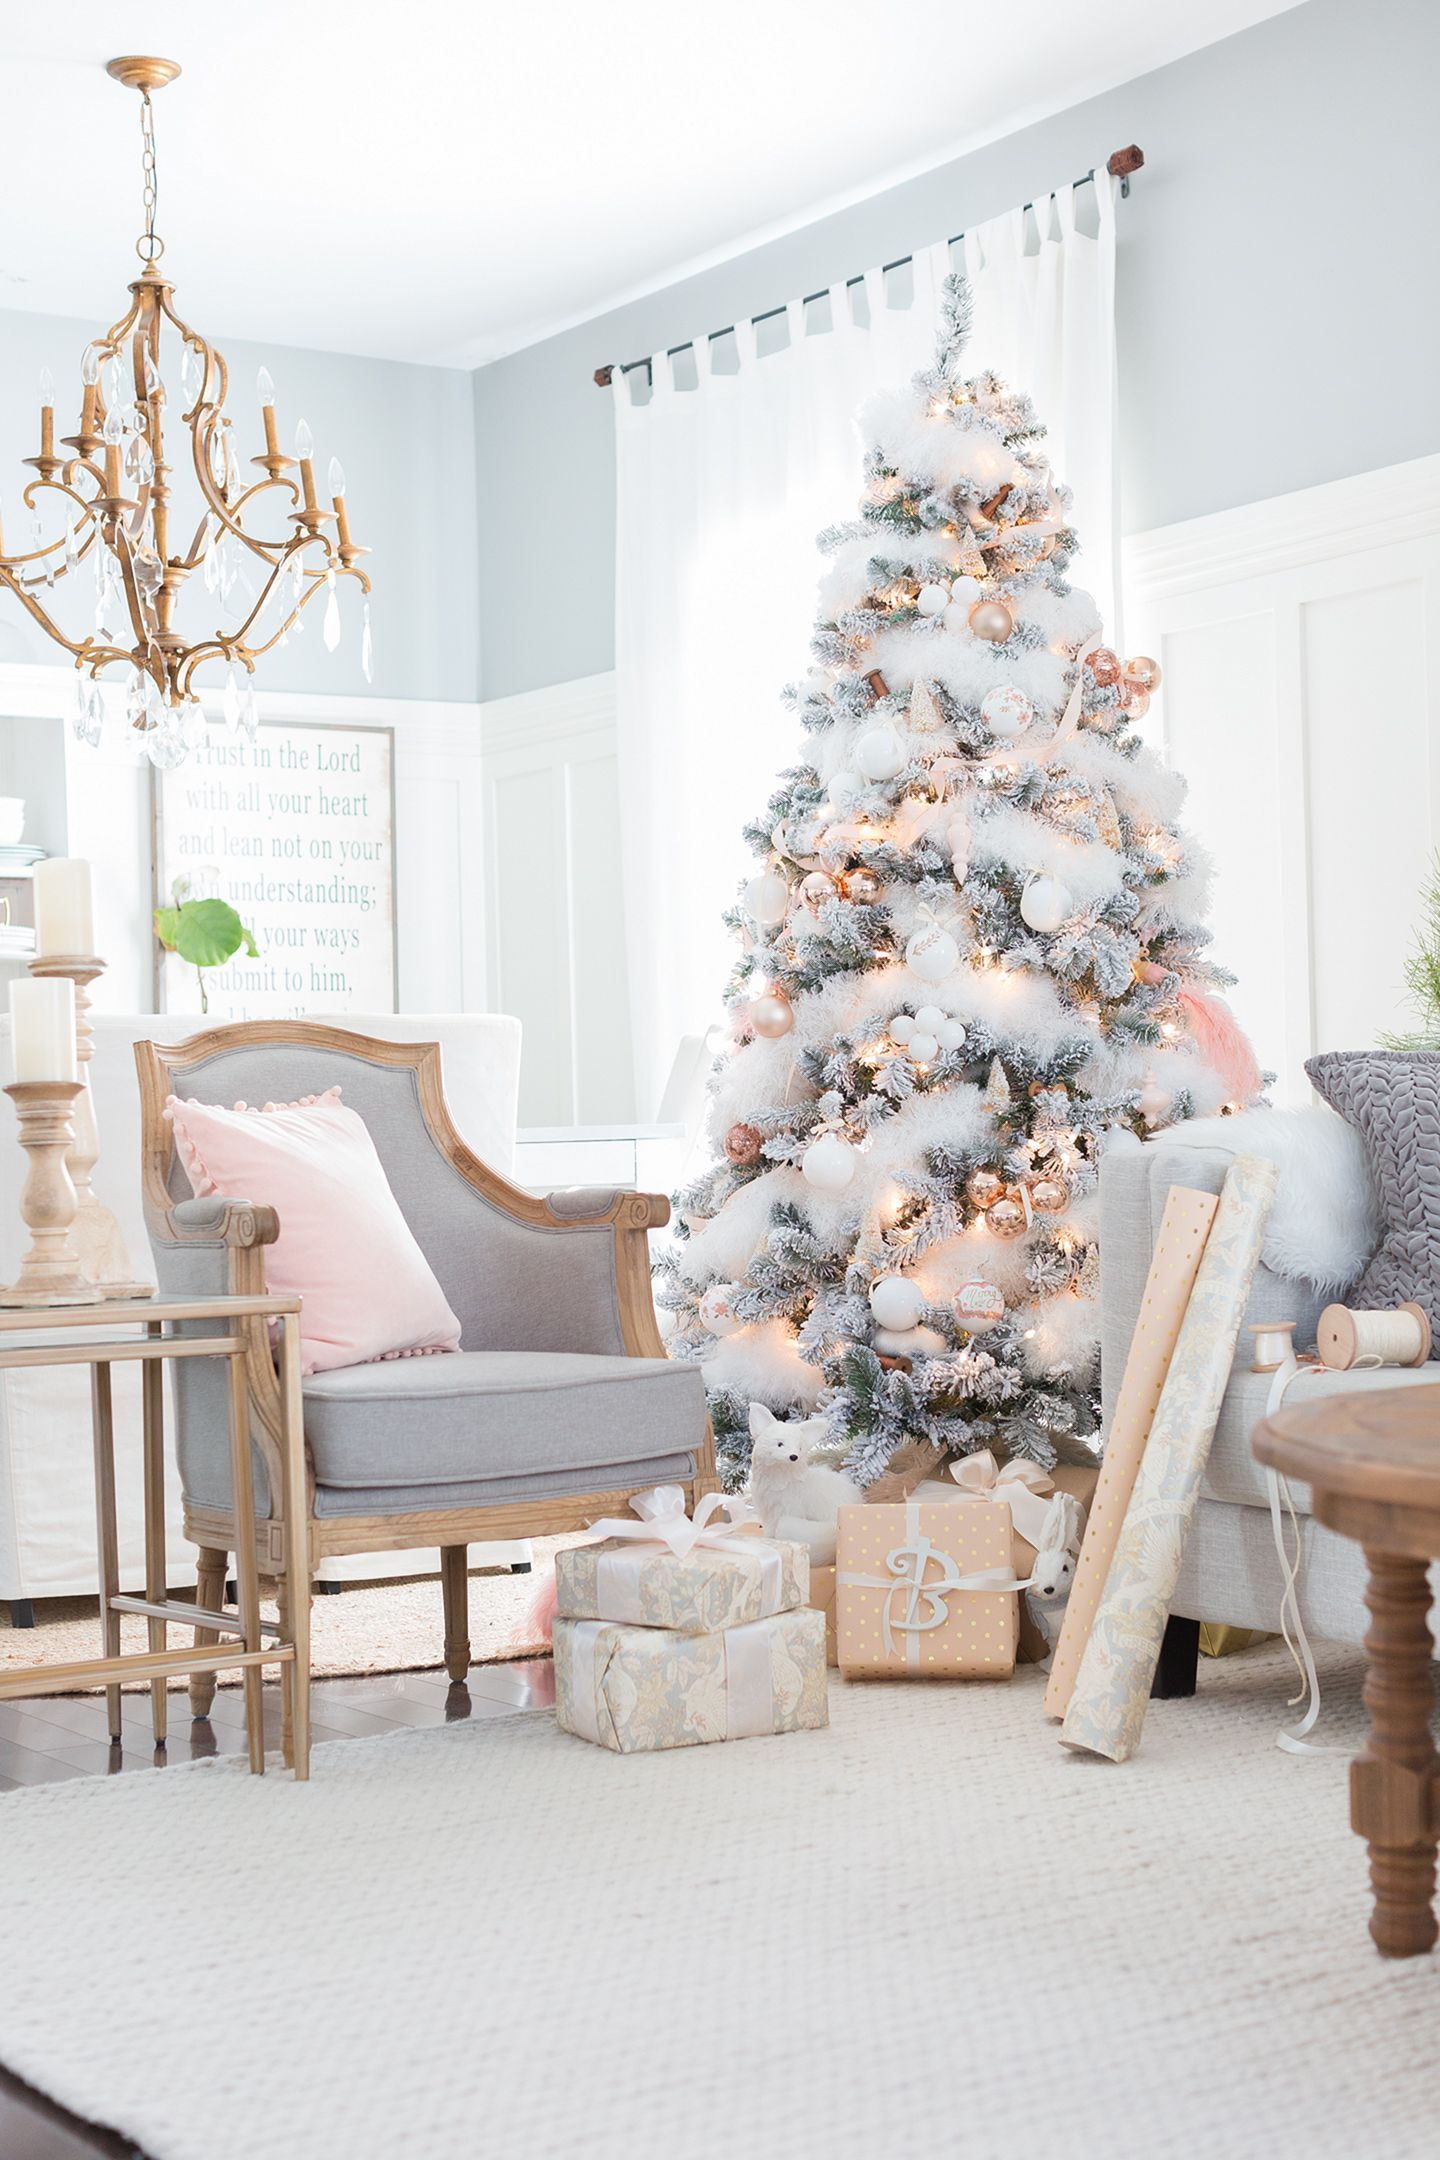 Amazing Christmas Tree Themes For Your Home Decor For Everyday